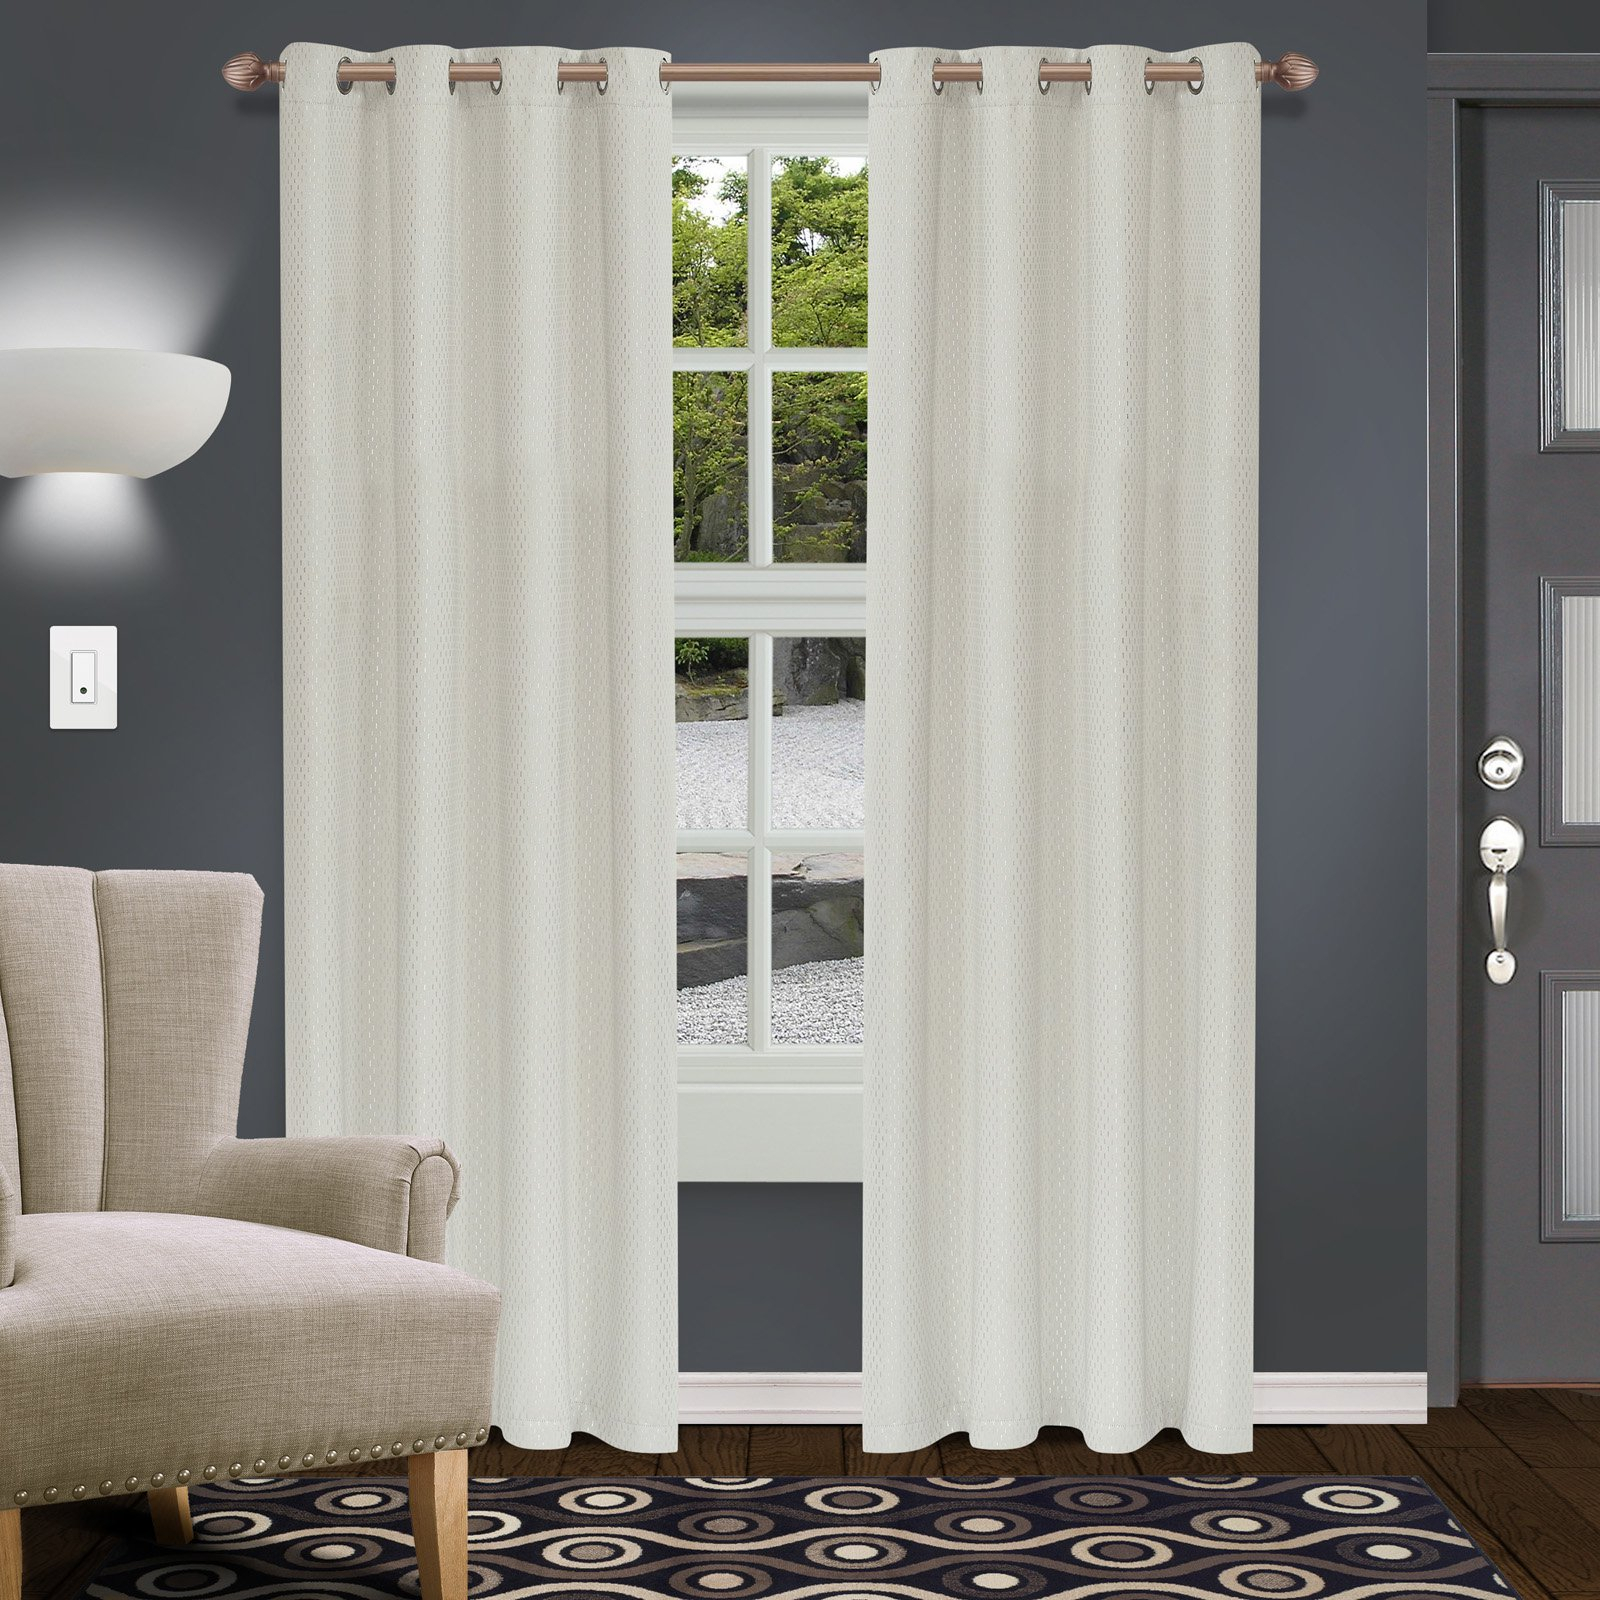 Superior Shimmer Blackout 2 Panel Curtains Ivory | Products Pertaining To Superior Solid Insulated Thermal Blackout Grommet Curtain Panel Pairs (View 16 of 30)